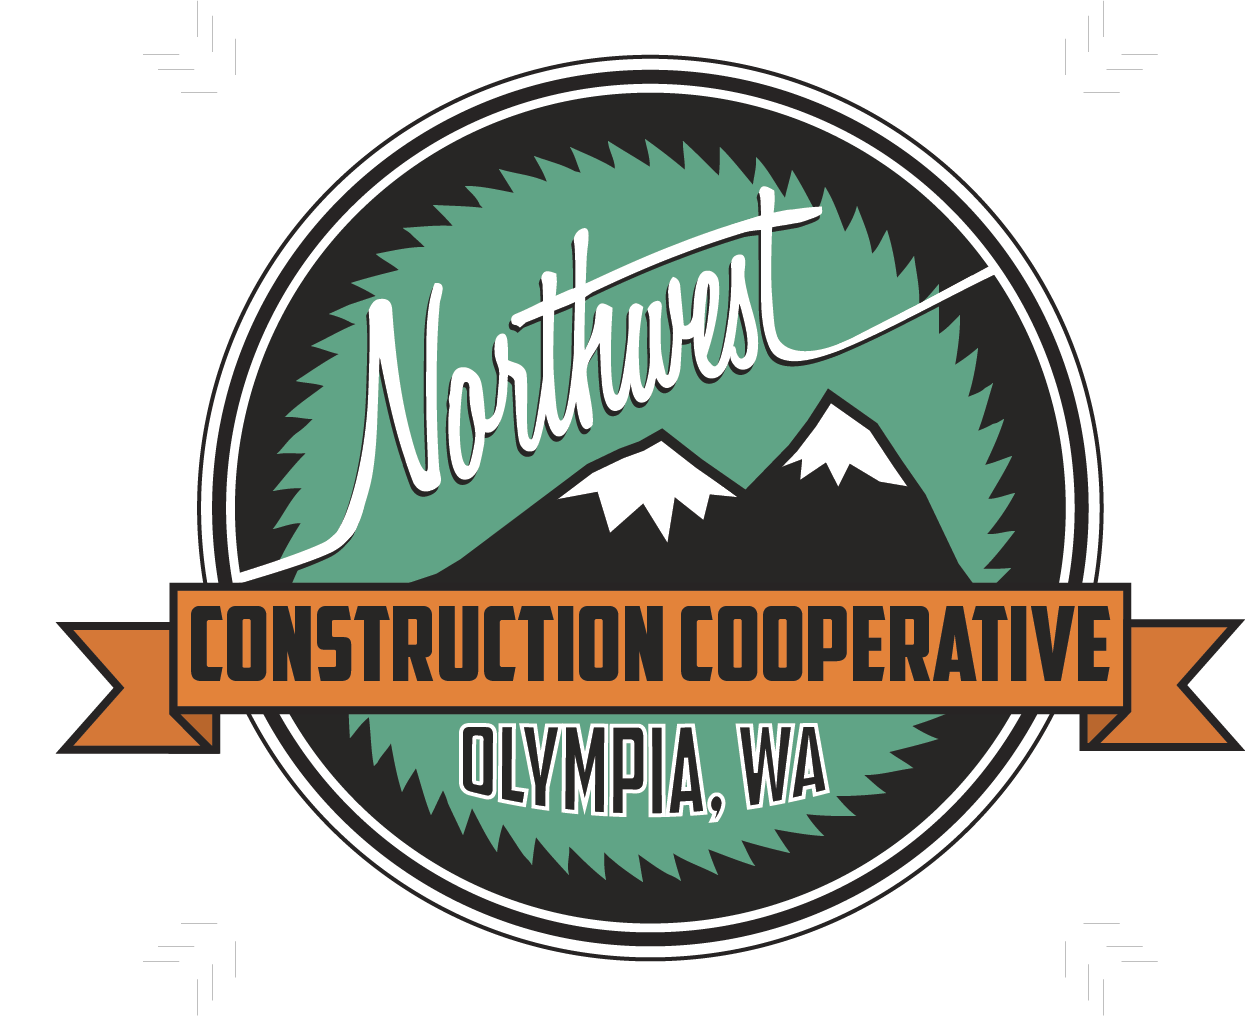 Northwest Construction Cooperative